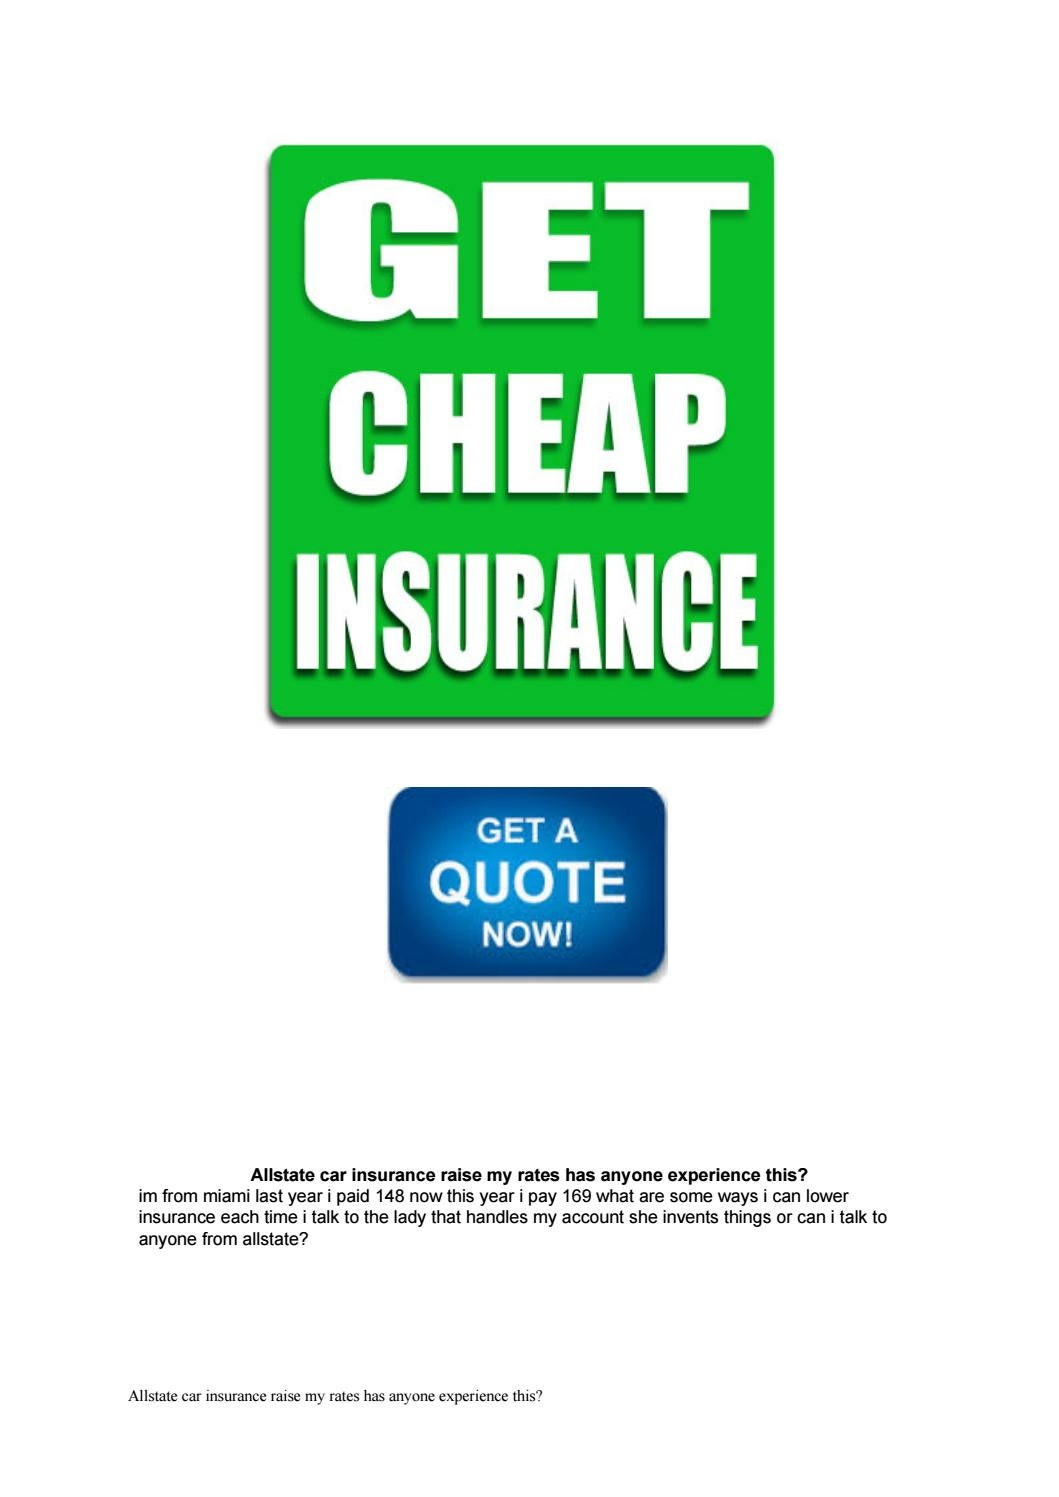 Allstate My Account >> Allstate Car Insurance Raise My Rates Has Anyone Experience This By